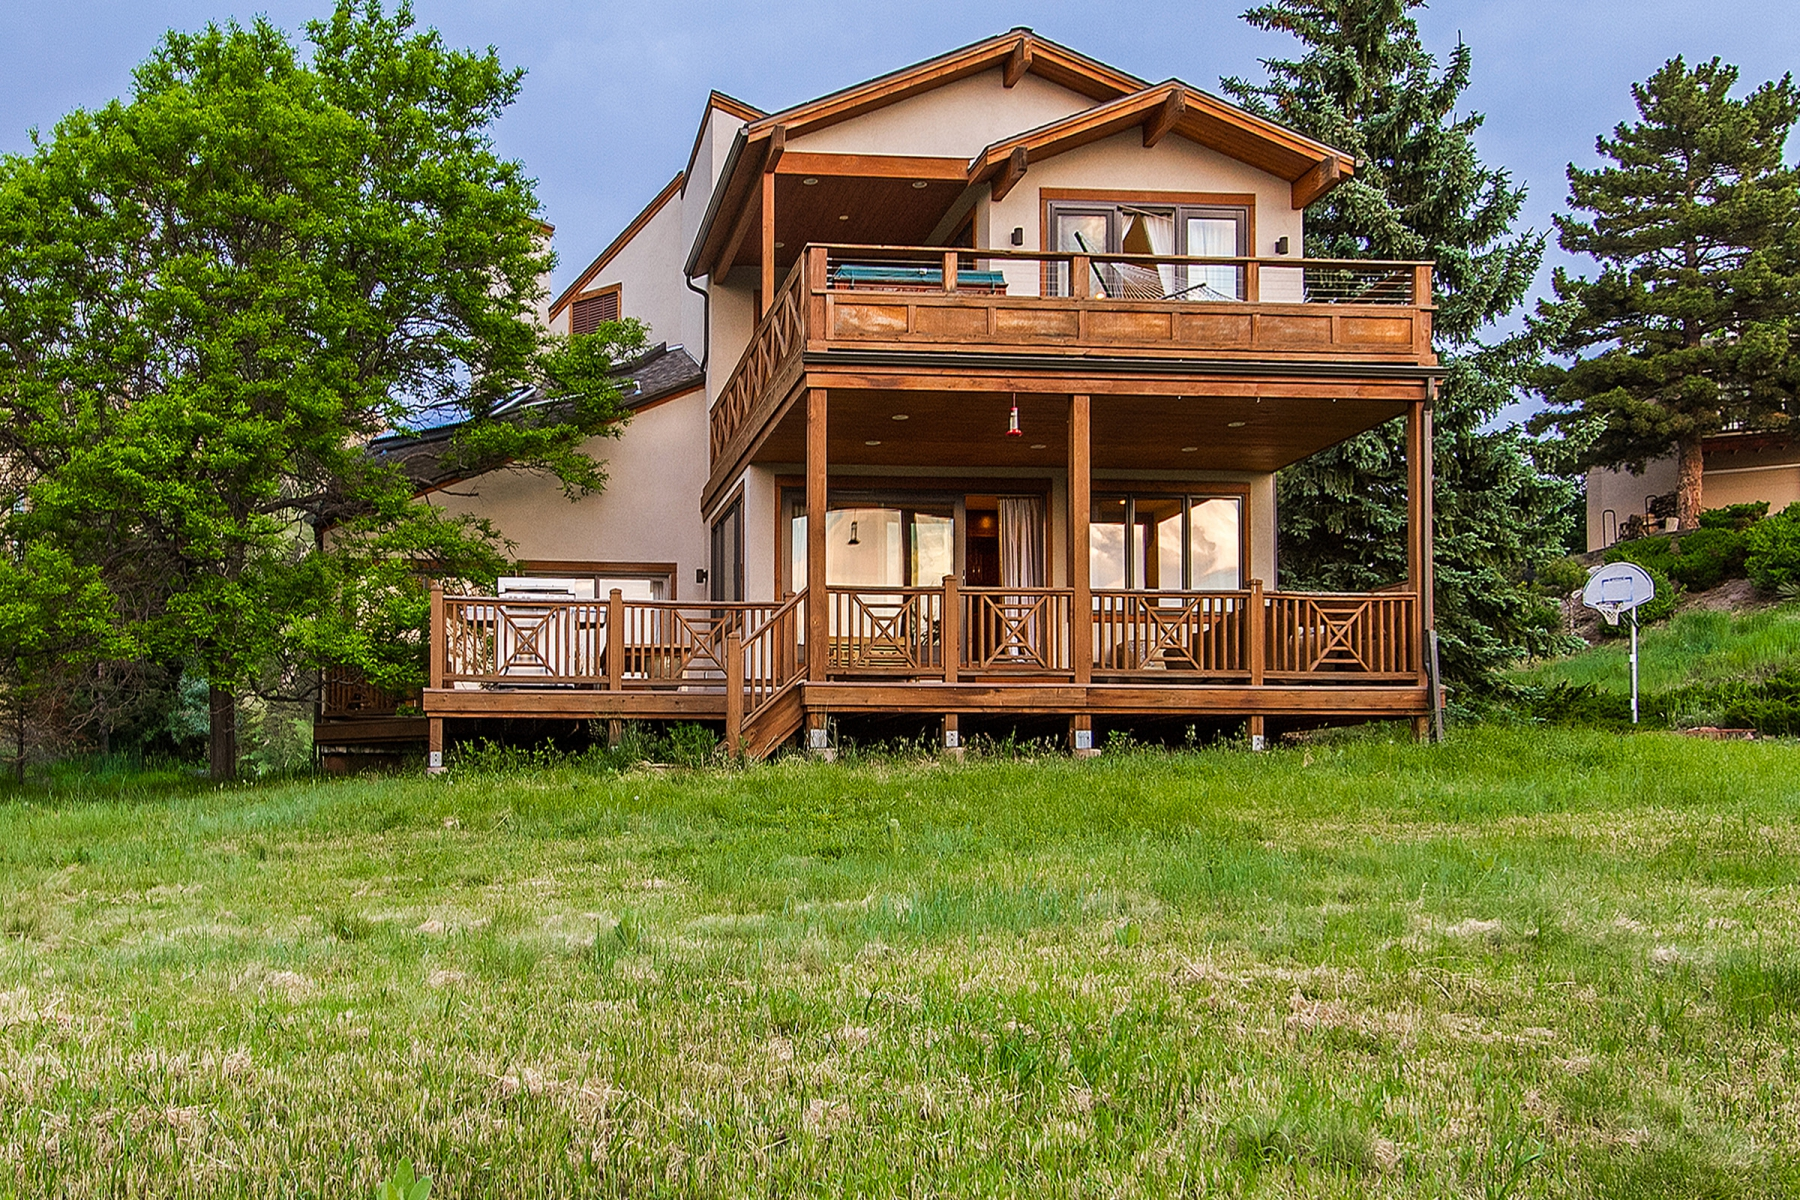 Single Family Home for Sale at 63 Boulder View Lane Boulder, Colorado 80304 United States